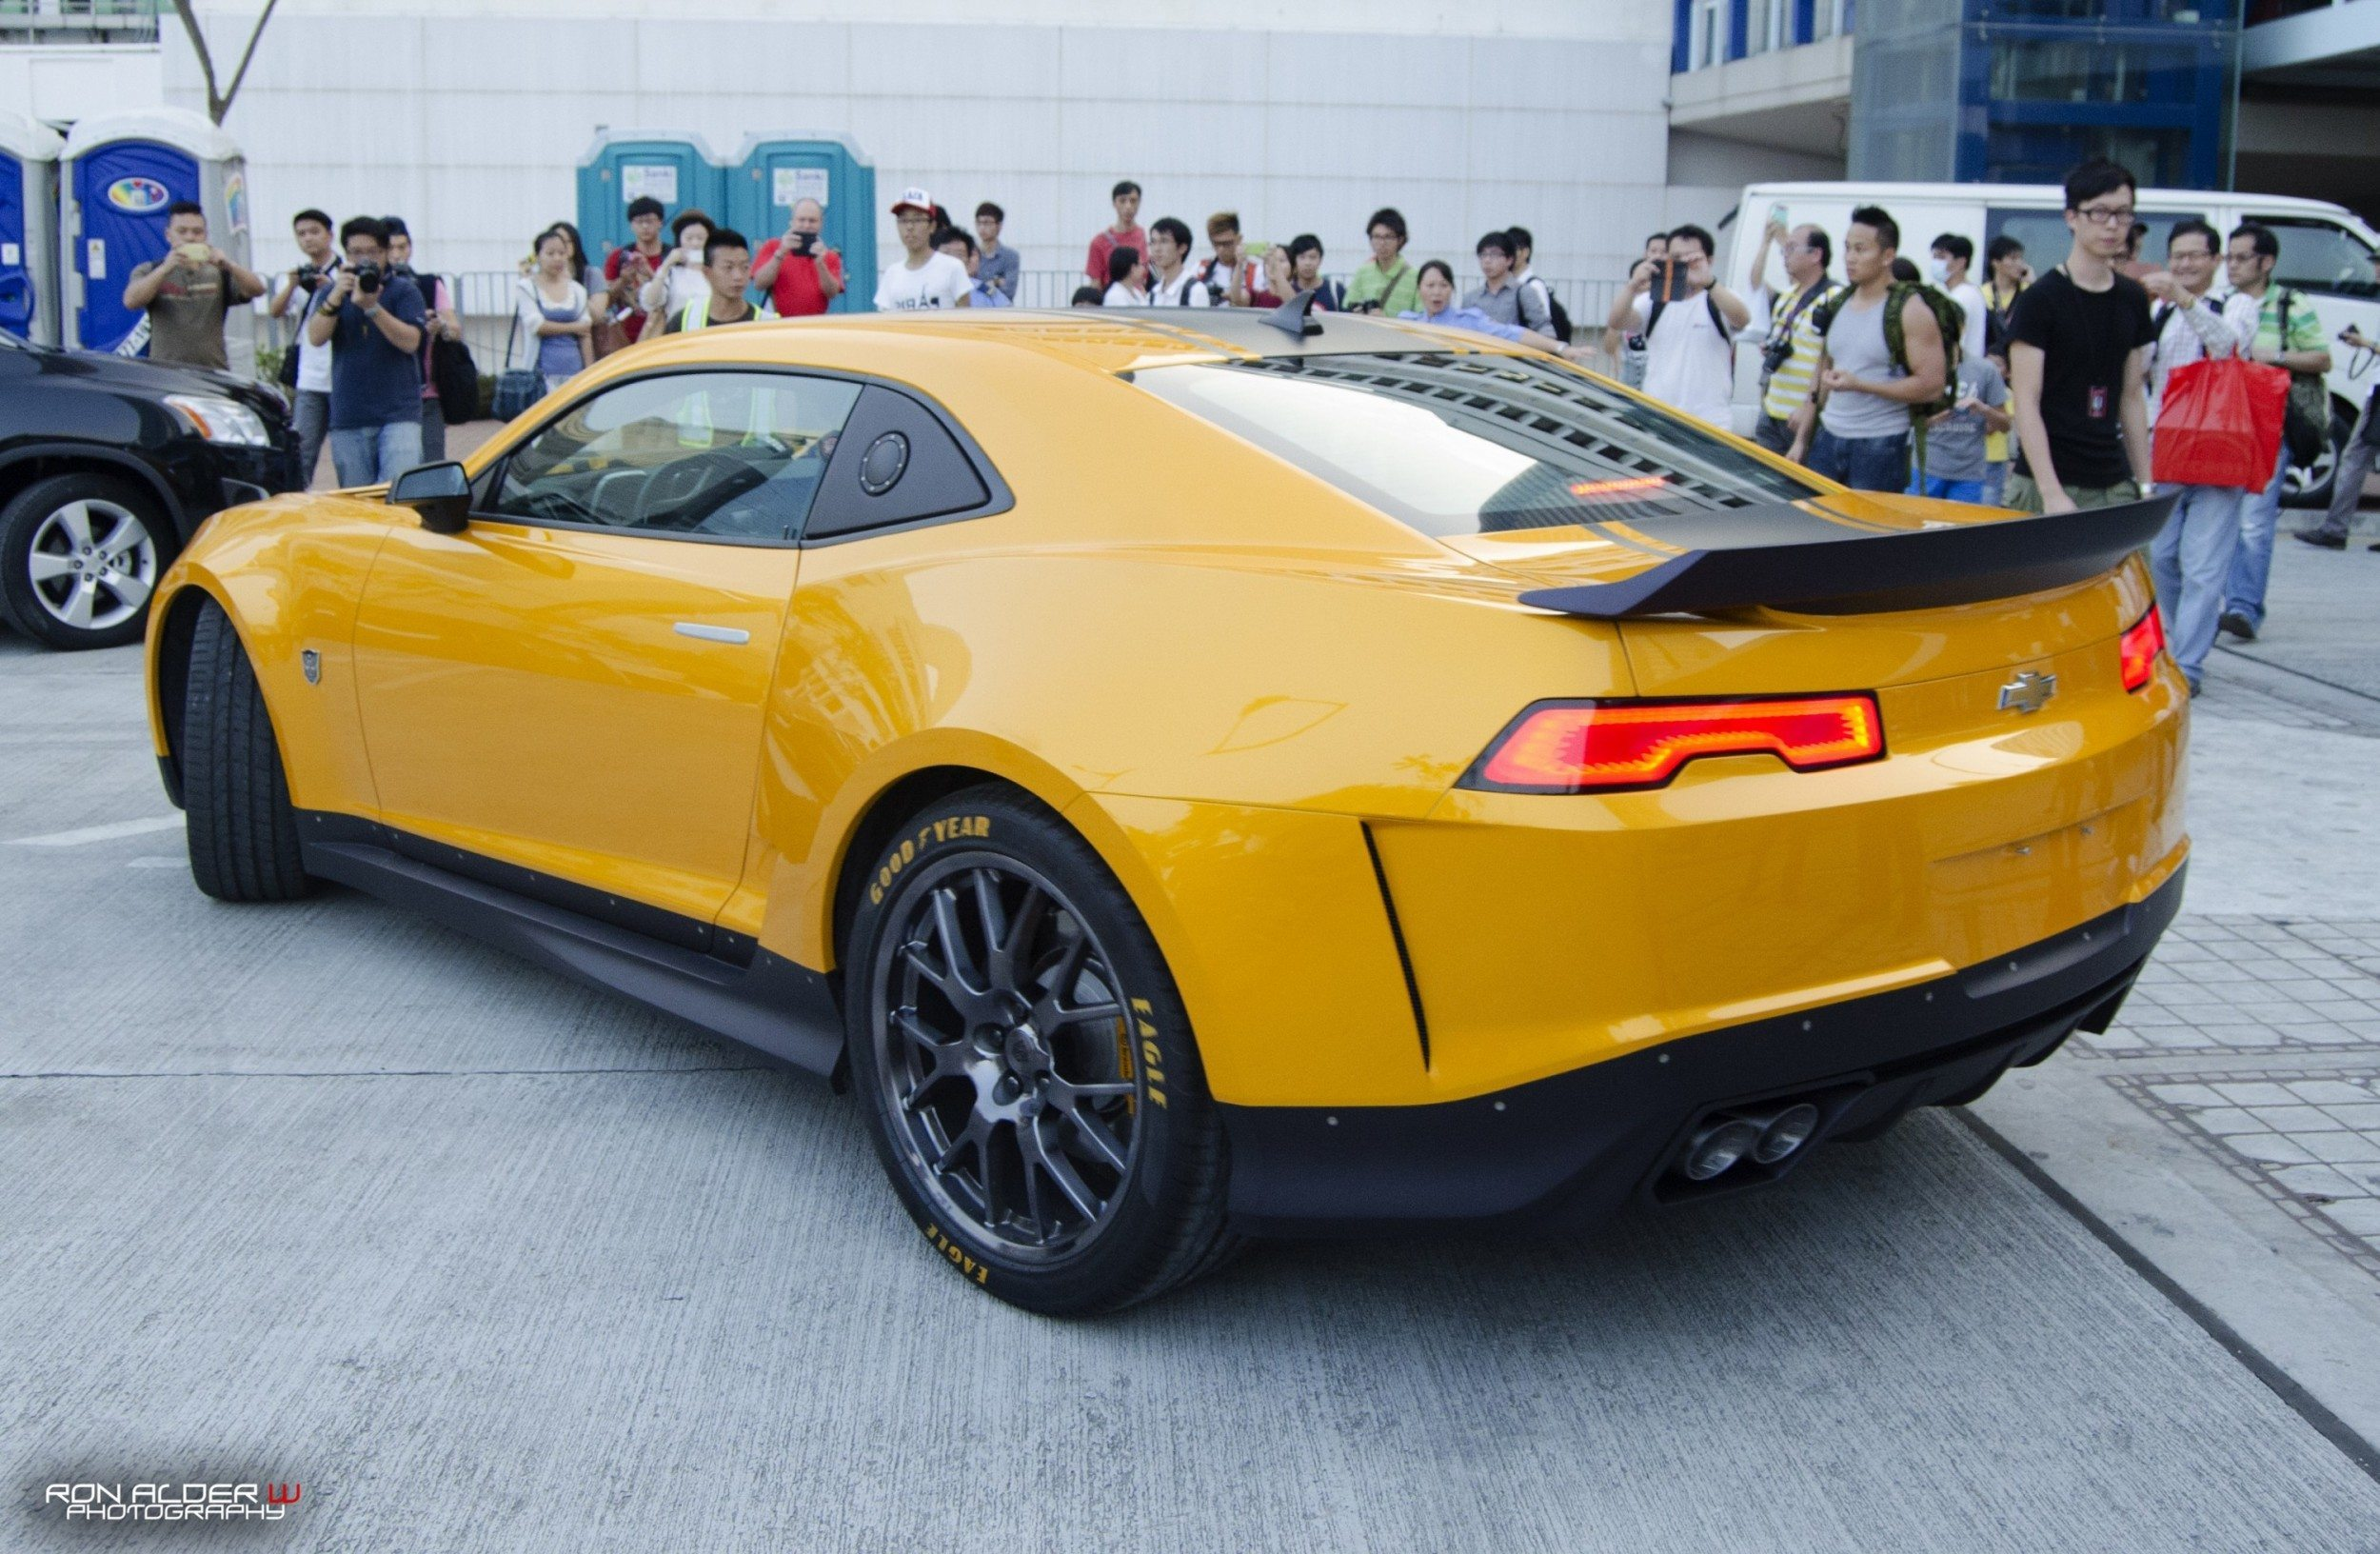 Prediction Bumblebee Chevrolet Camaro Gone After Transformers4